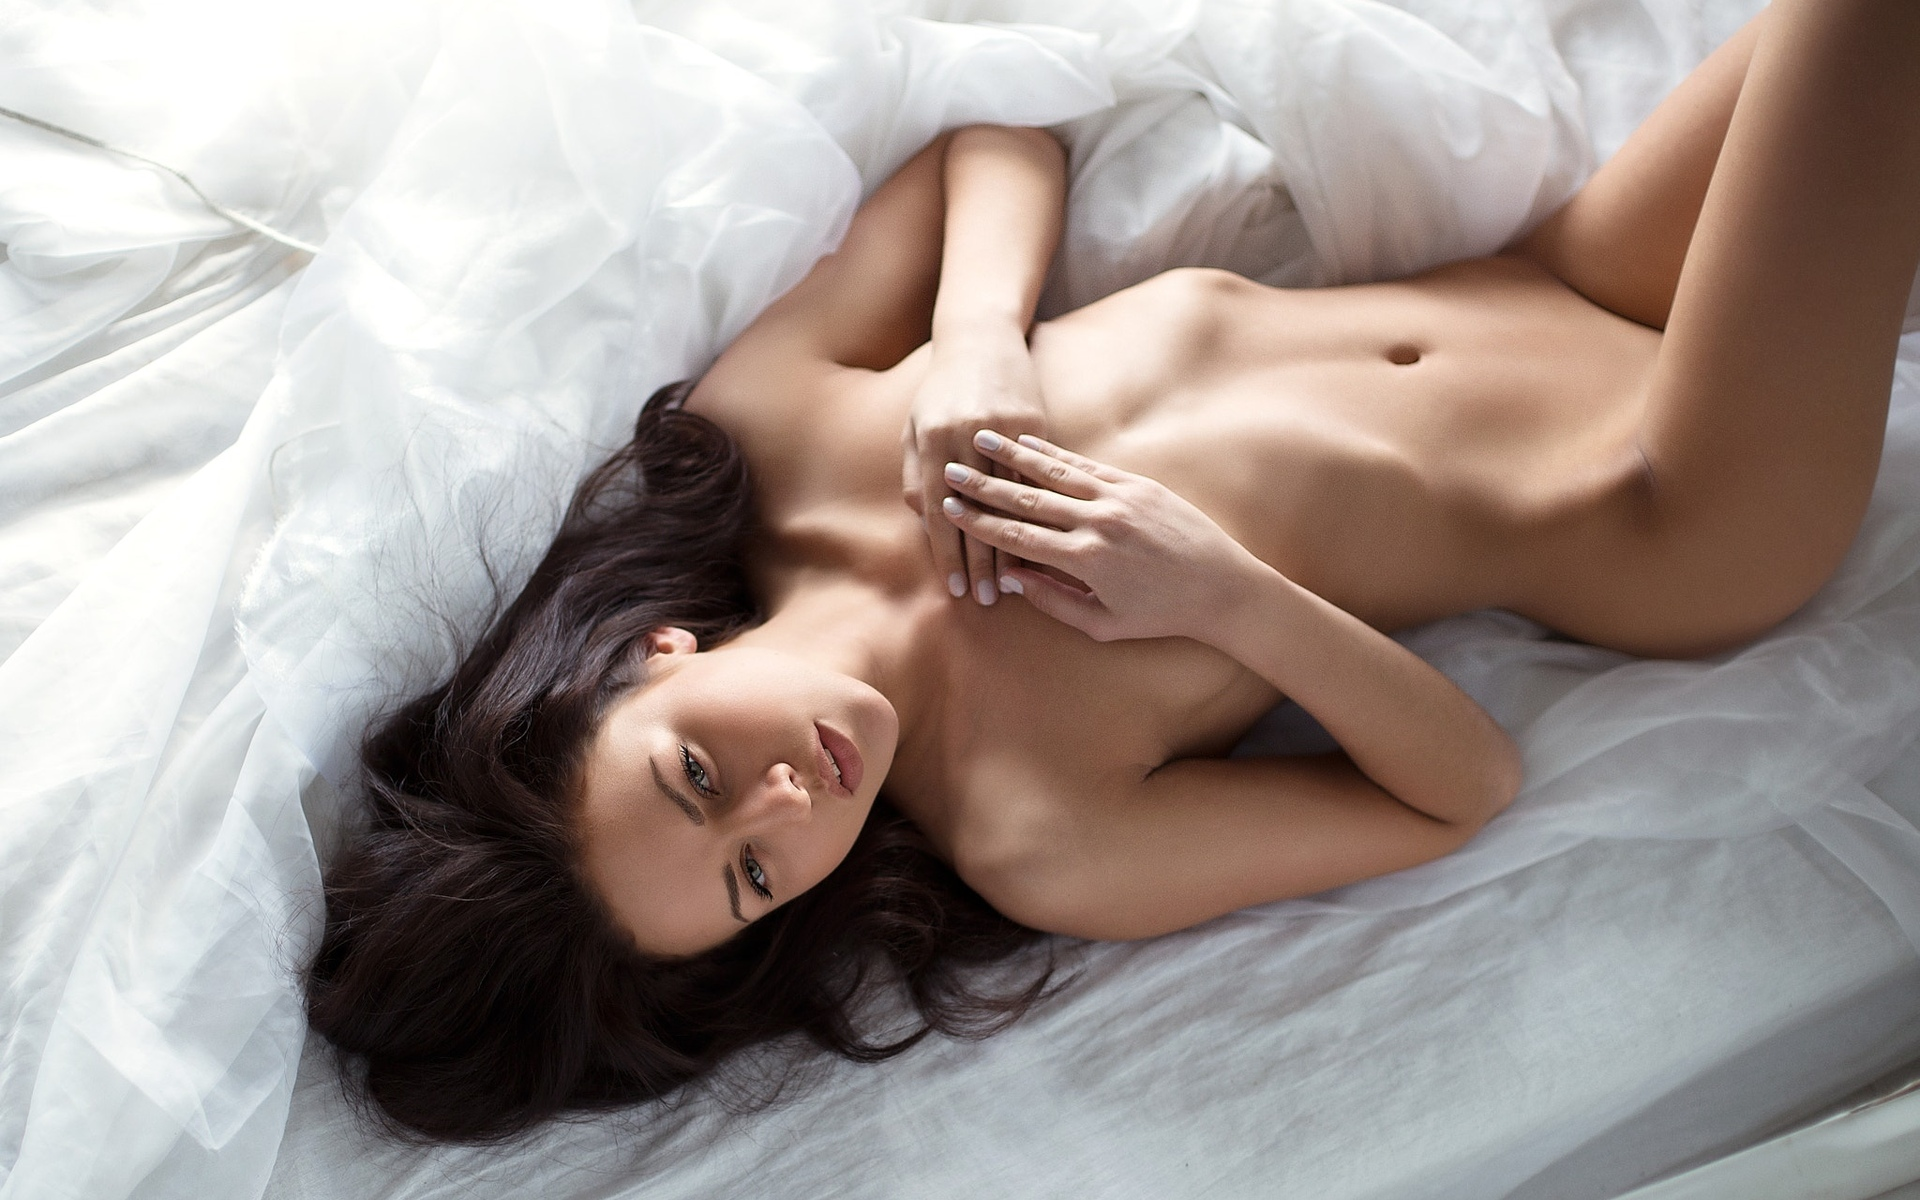 sexy-women-nude-in-bed